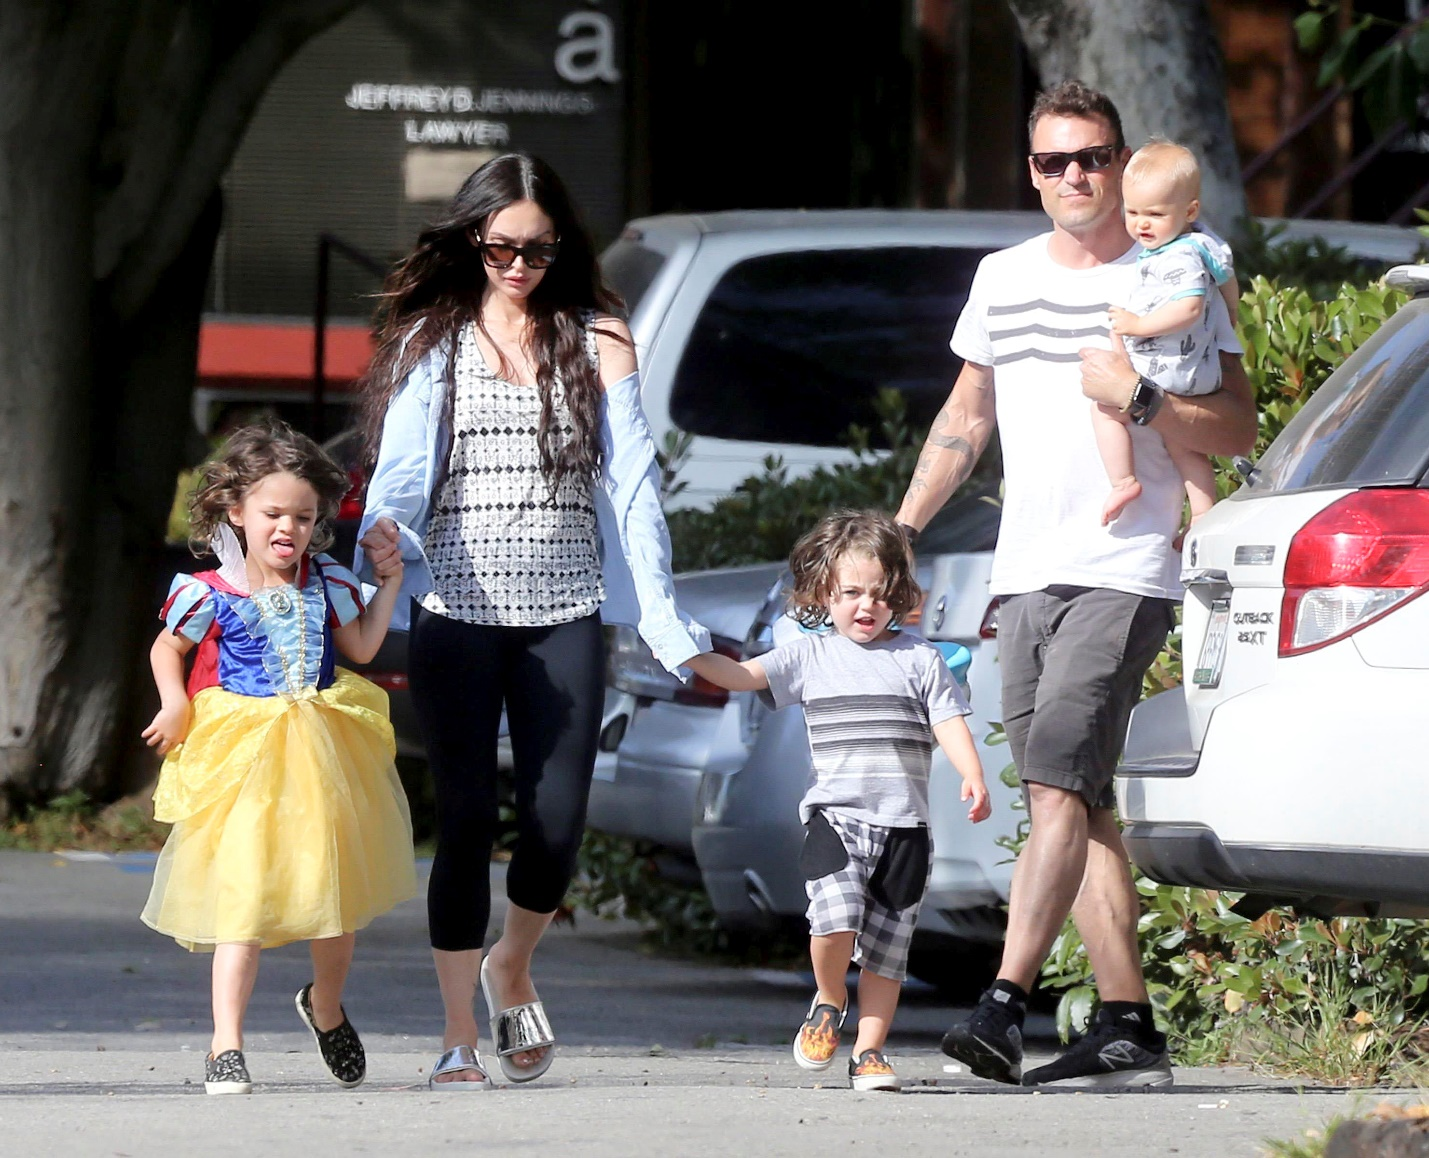 http://cdn.megastyle.ph/wp-content/uploads/2017/08/07130404/Megan-Fox-with-Brian-Austin-Green-and-their-three-sons-Noah-Bodhi-and-Journey.jpg